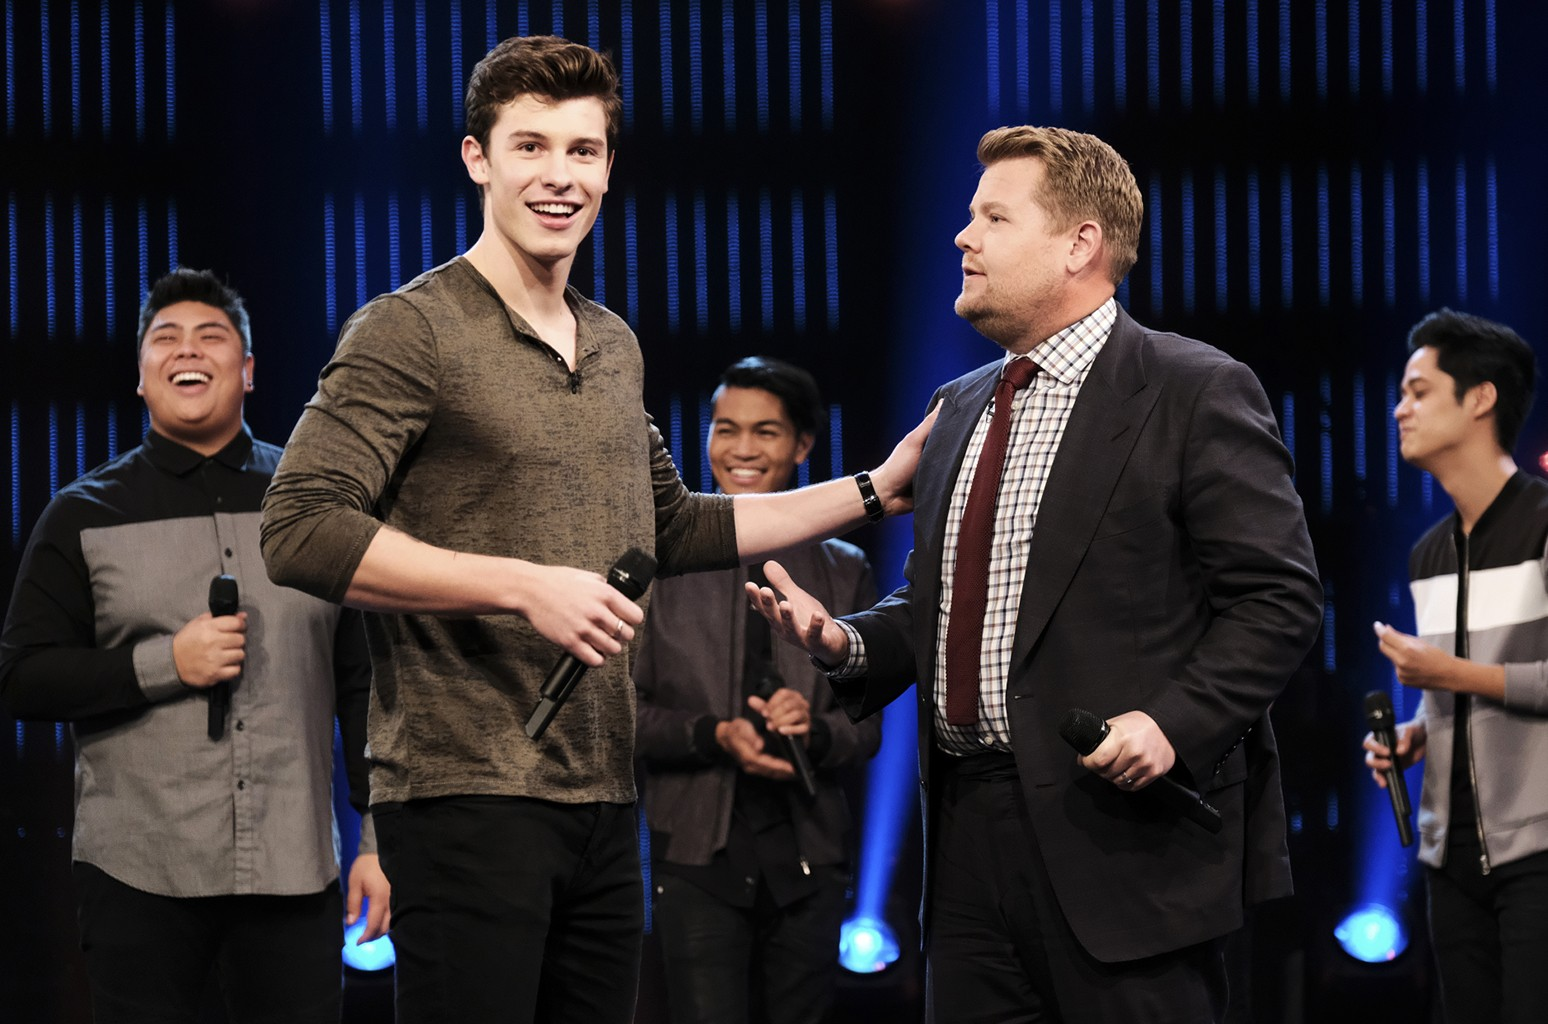 Shawn Mendes & James Corden